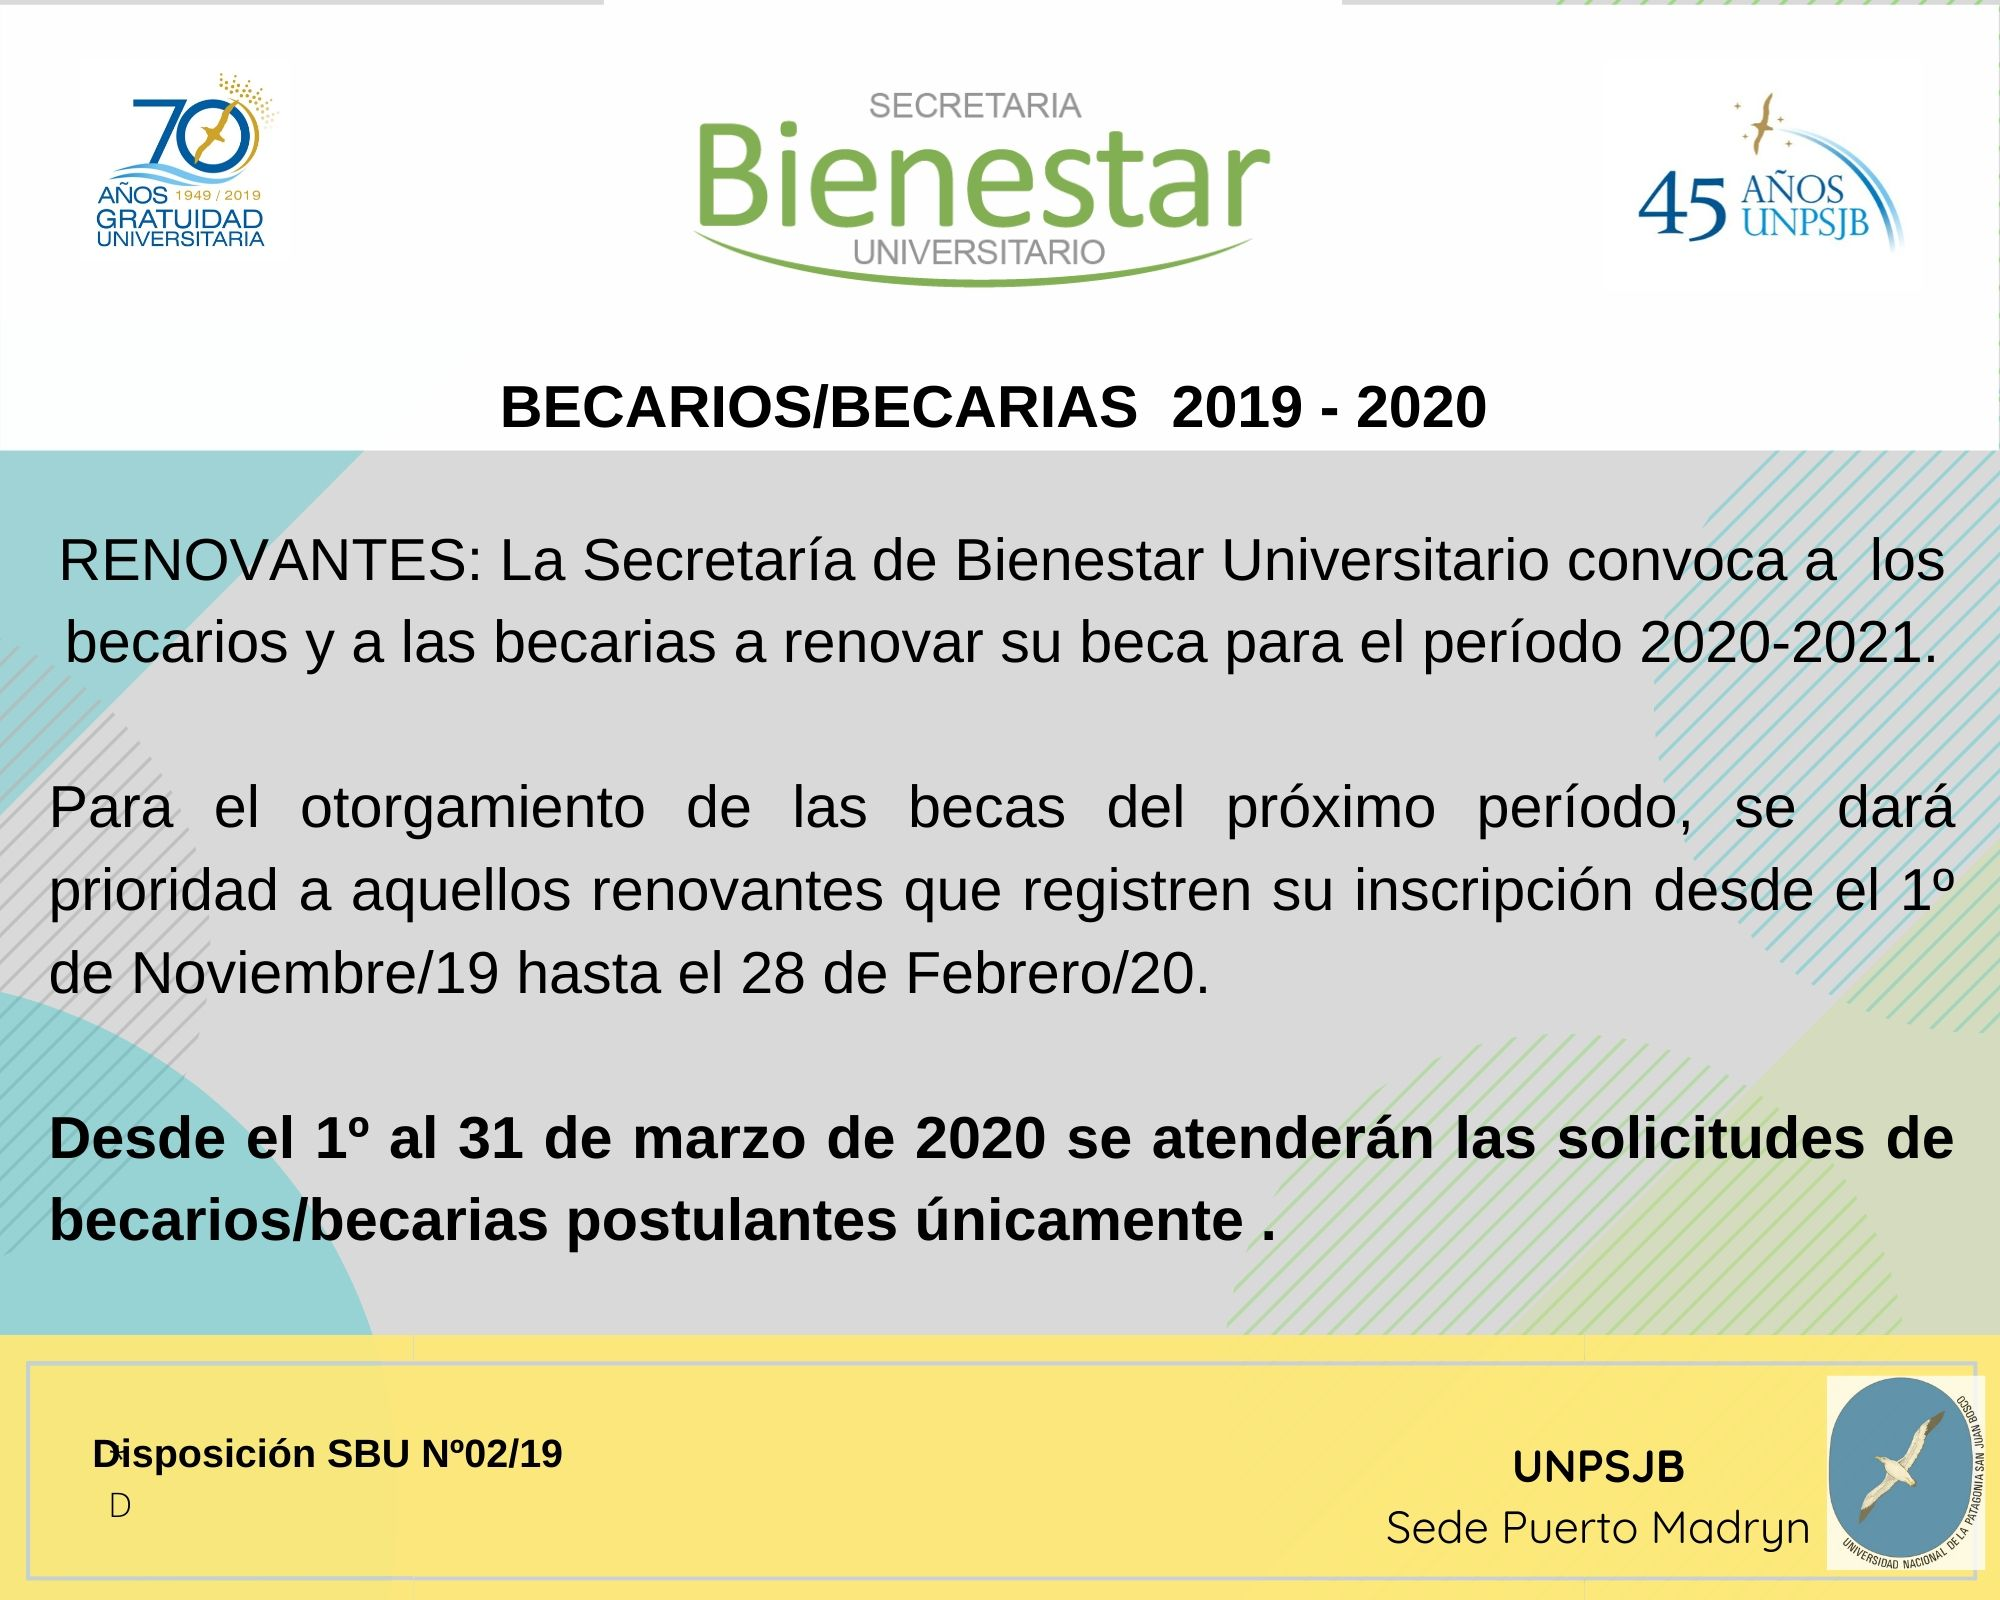 BIENESTARRENOVANTES